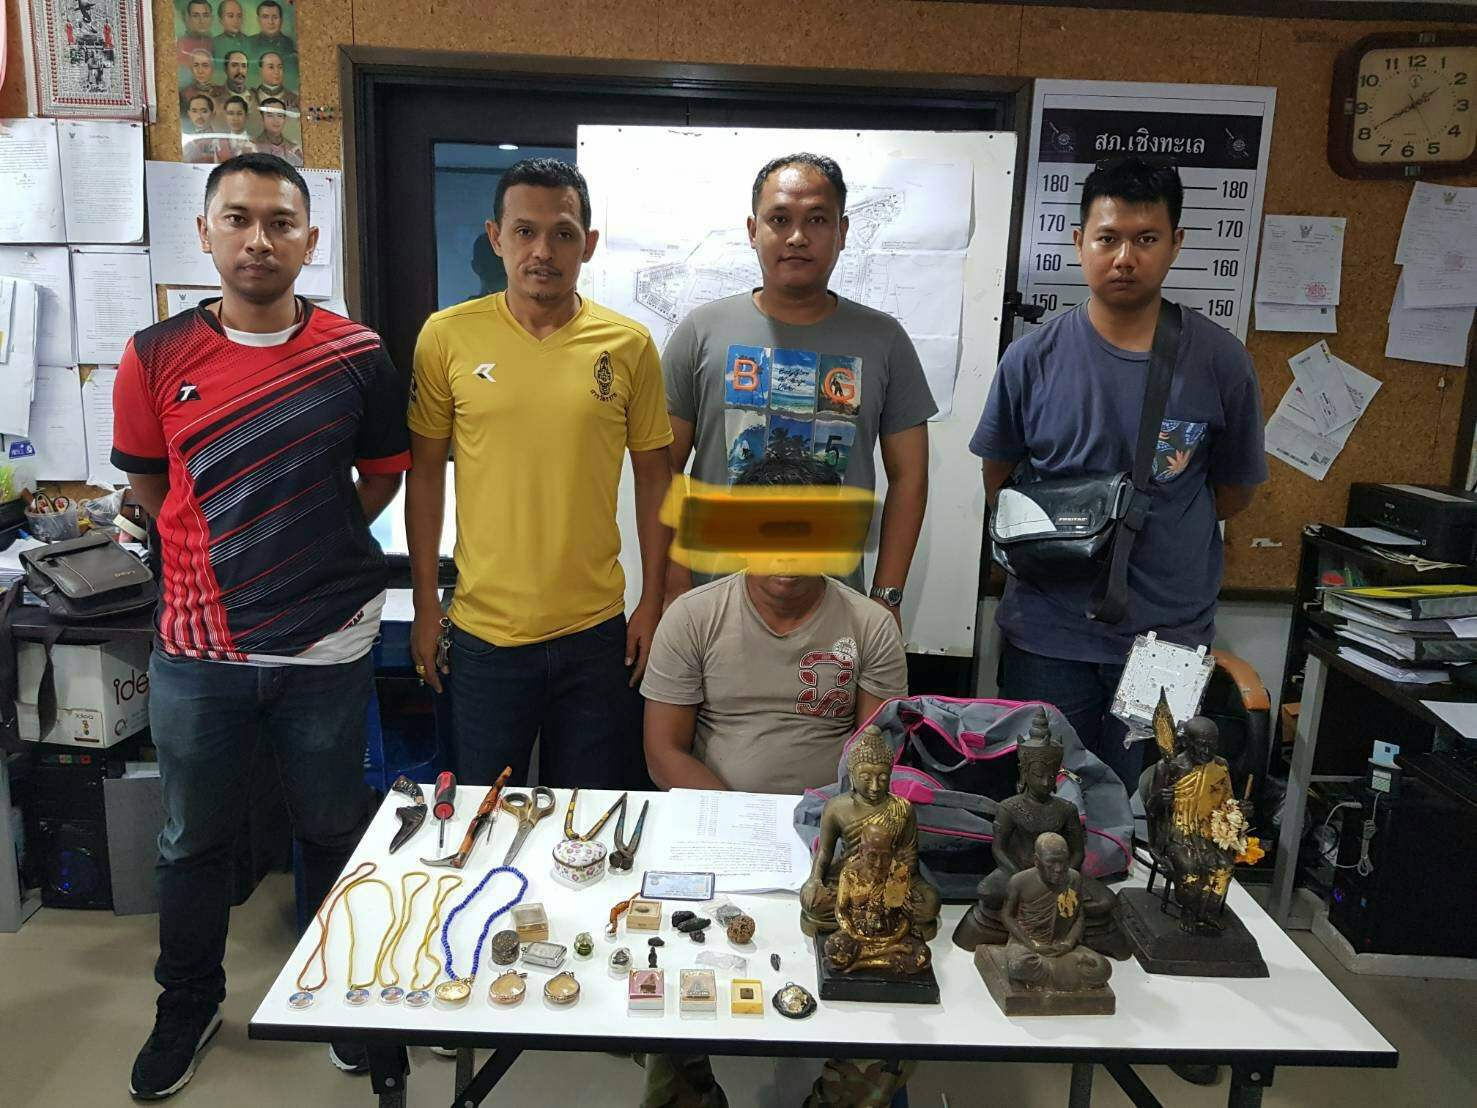 Amulet thief arrested in Cherng Talay | The Thaiger